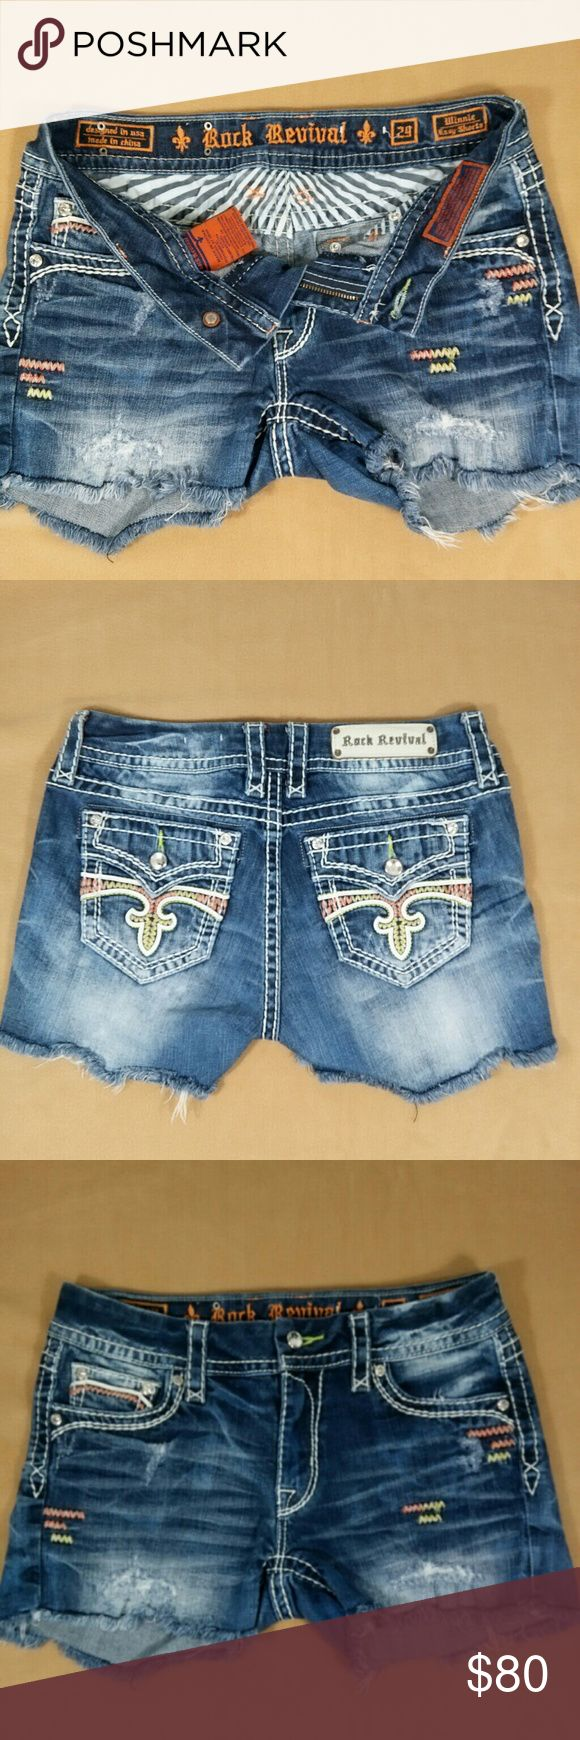 """Rock Revival jean shorts size 29 Winnie Easy Medium wash distressed with pastel color stitched design on back pockets and front detail. Size 29 Rise 8 1/2 Hips 18"""" side to side Rock Revival Shorts Jean Shorts"""